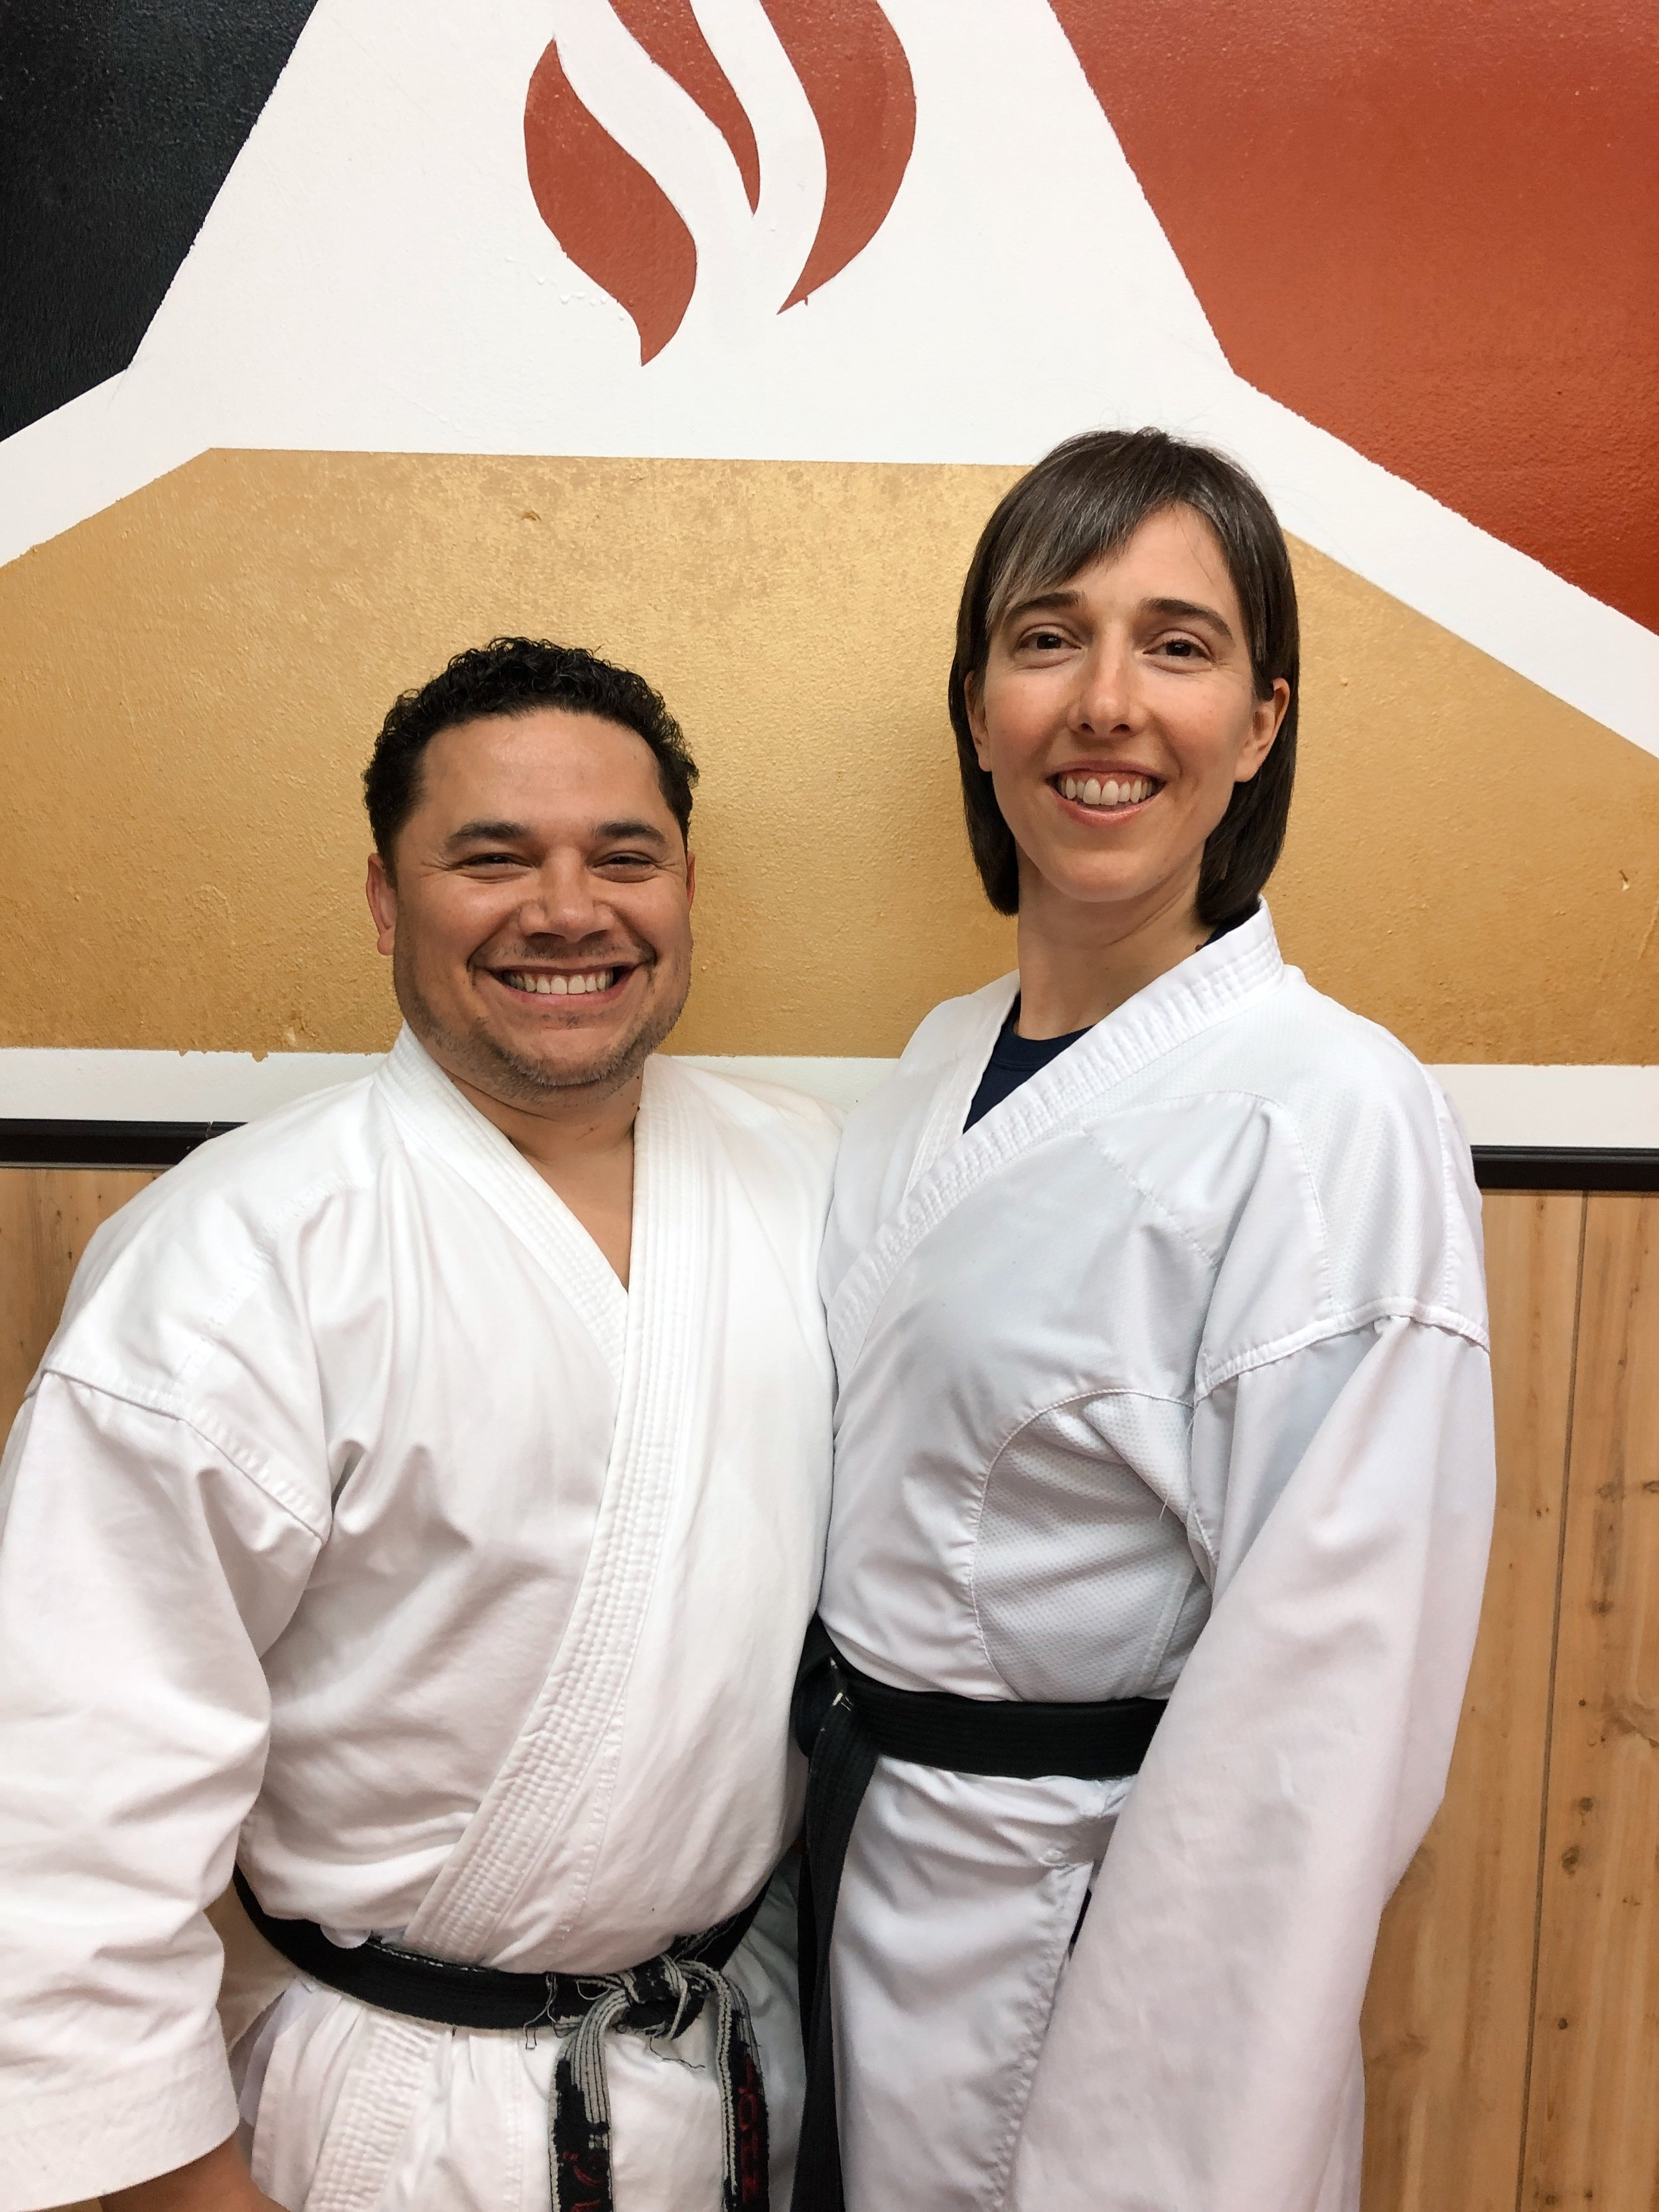 Mike and Sarah Franco at the Richland Dojo